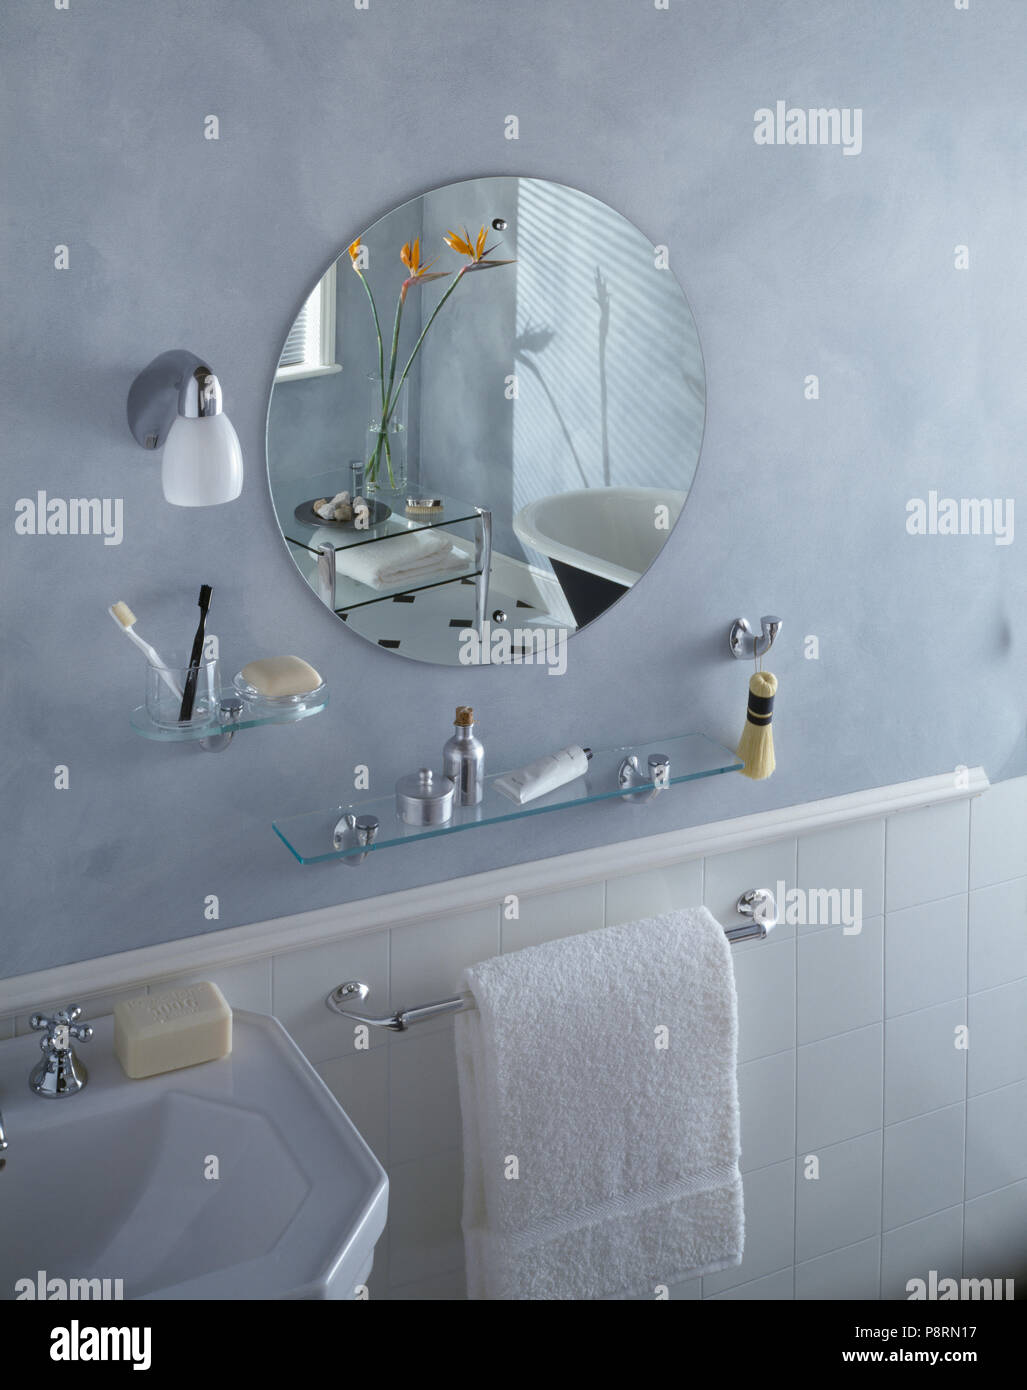 Circular Unframed Mirror And Glass Shelves Above White Towel